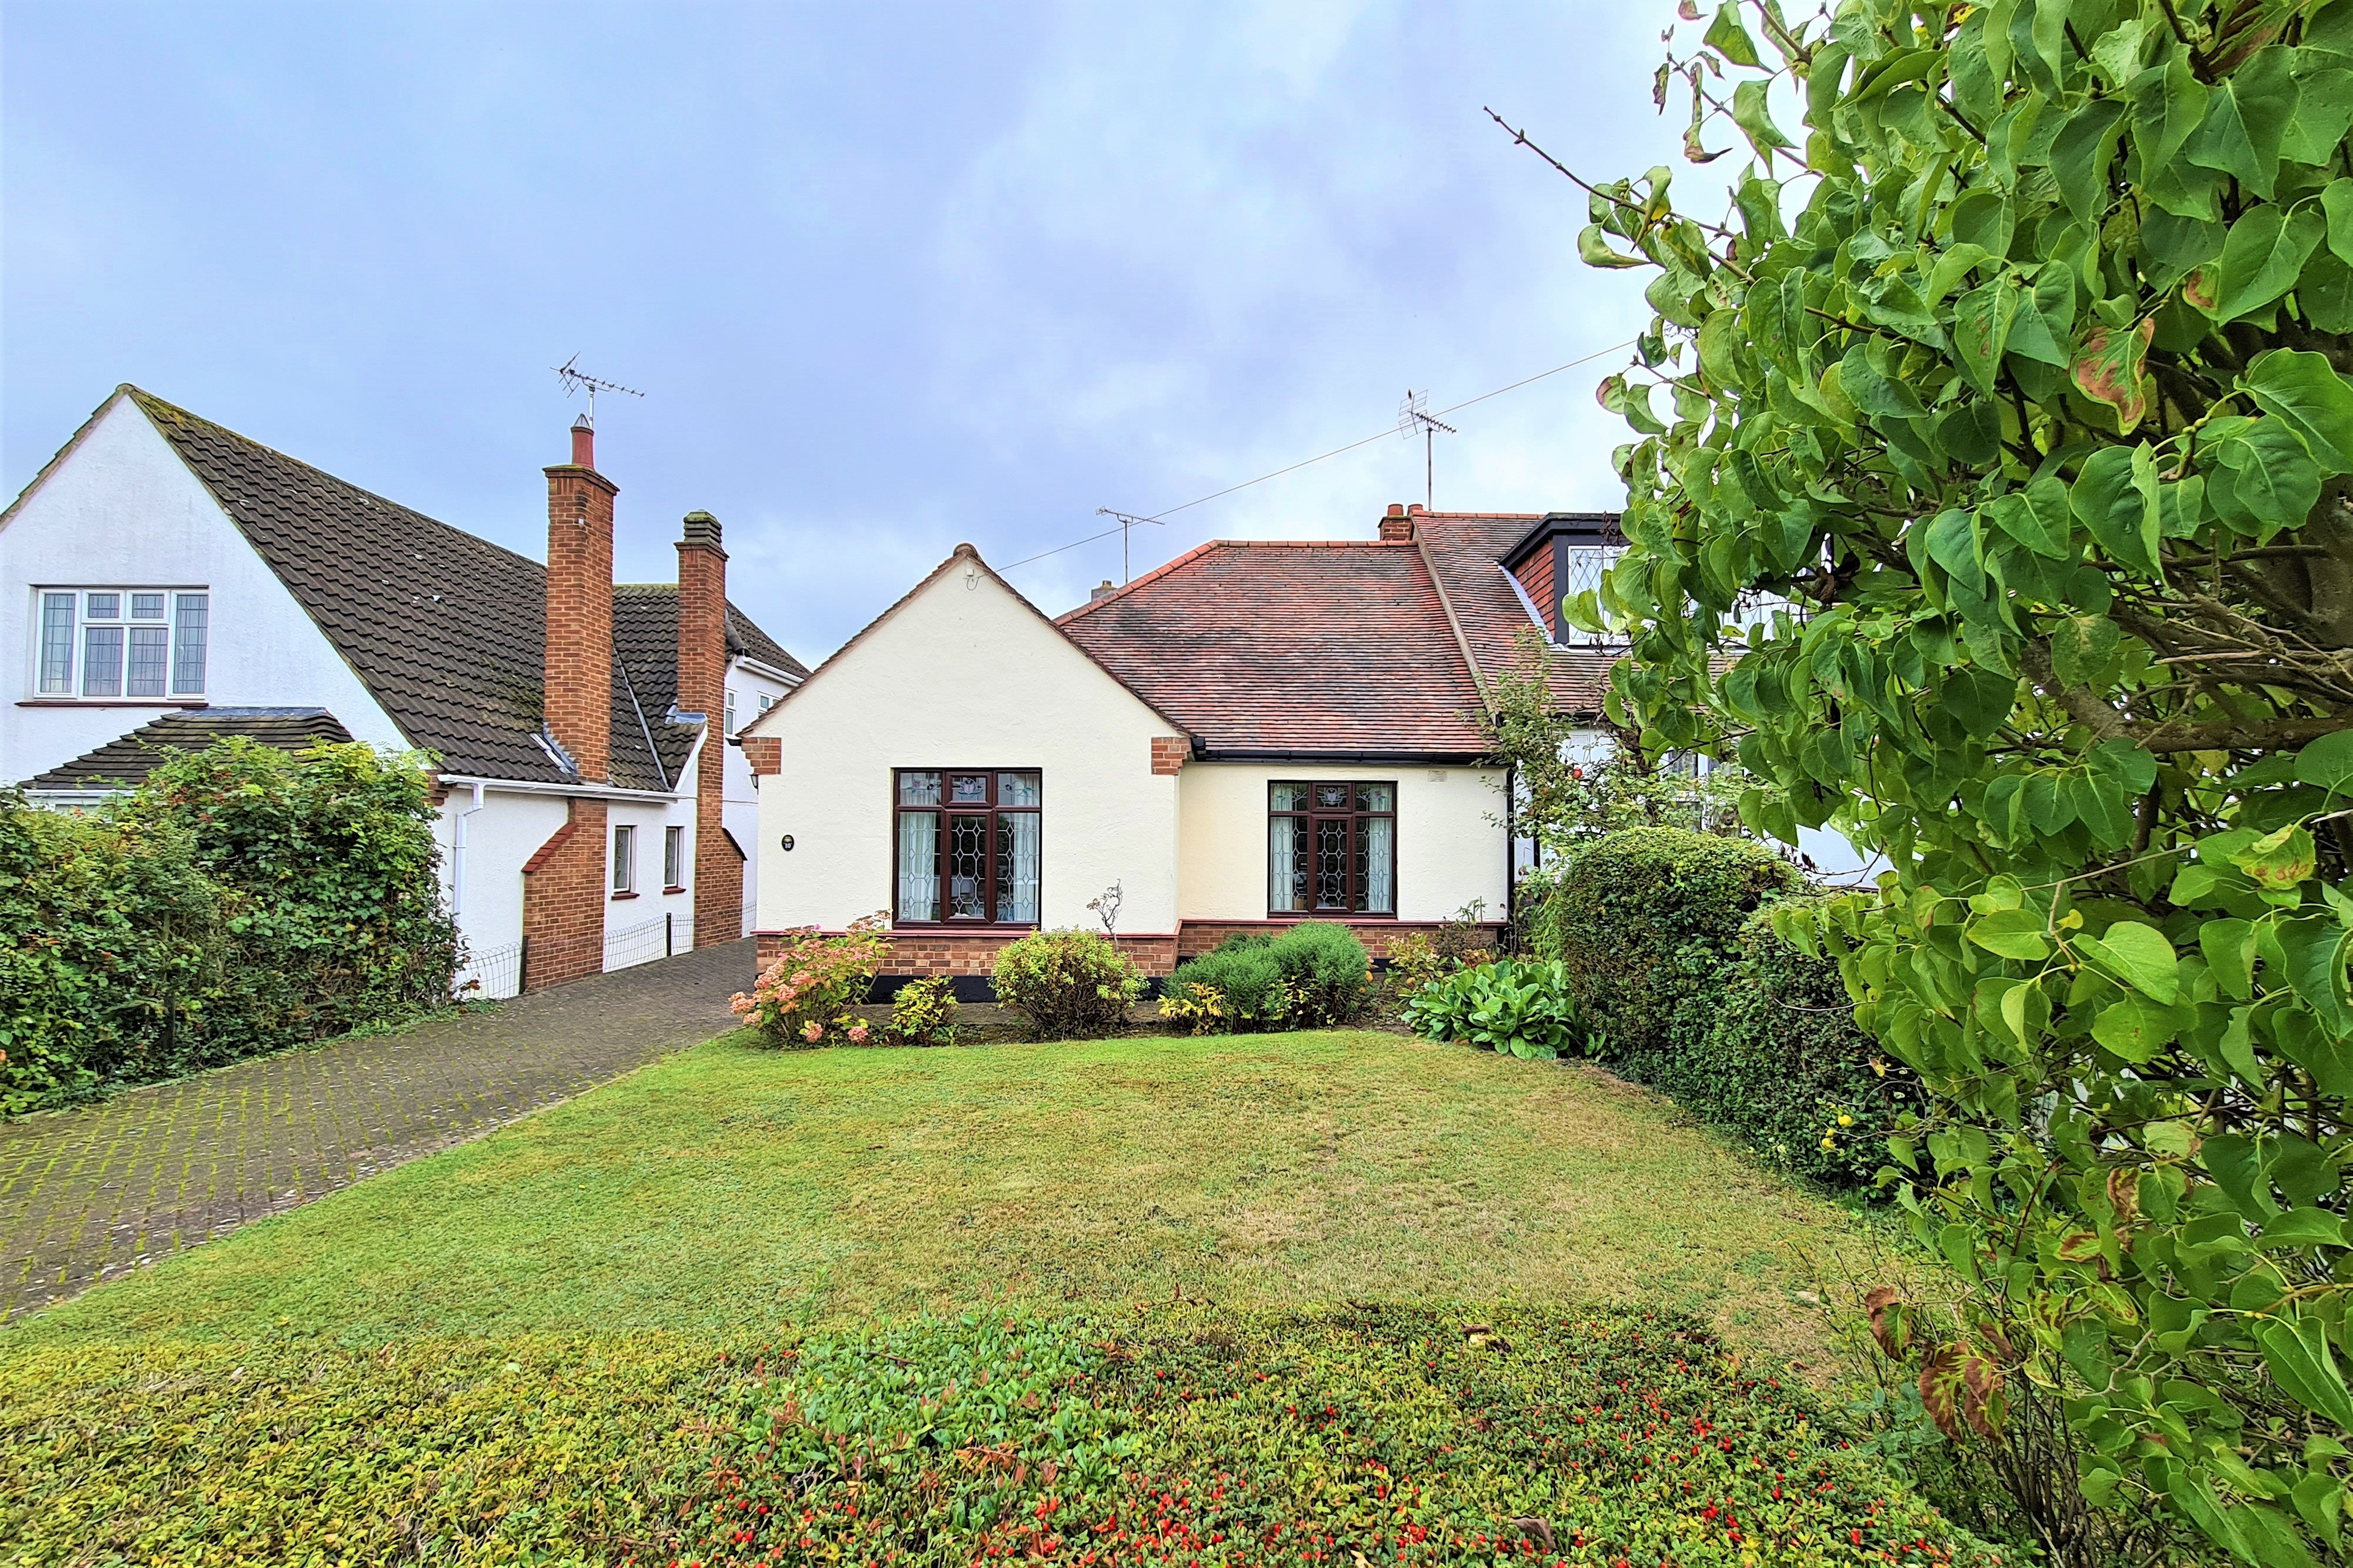 2 bed semi-detached bungalow for sale in Orchard Avenue, Rayleigh - Property Image 1